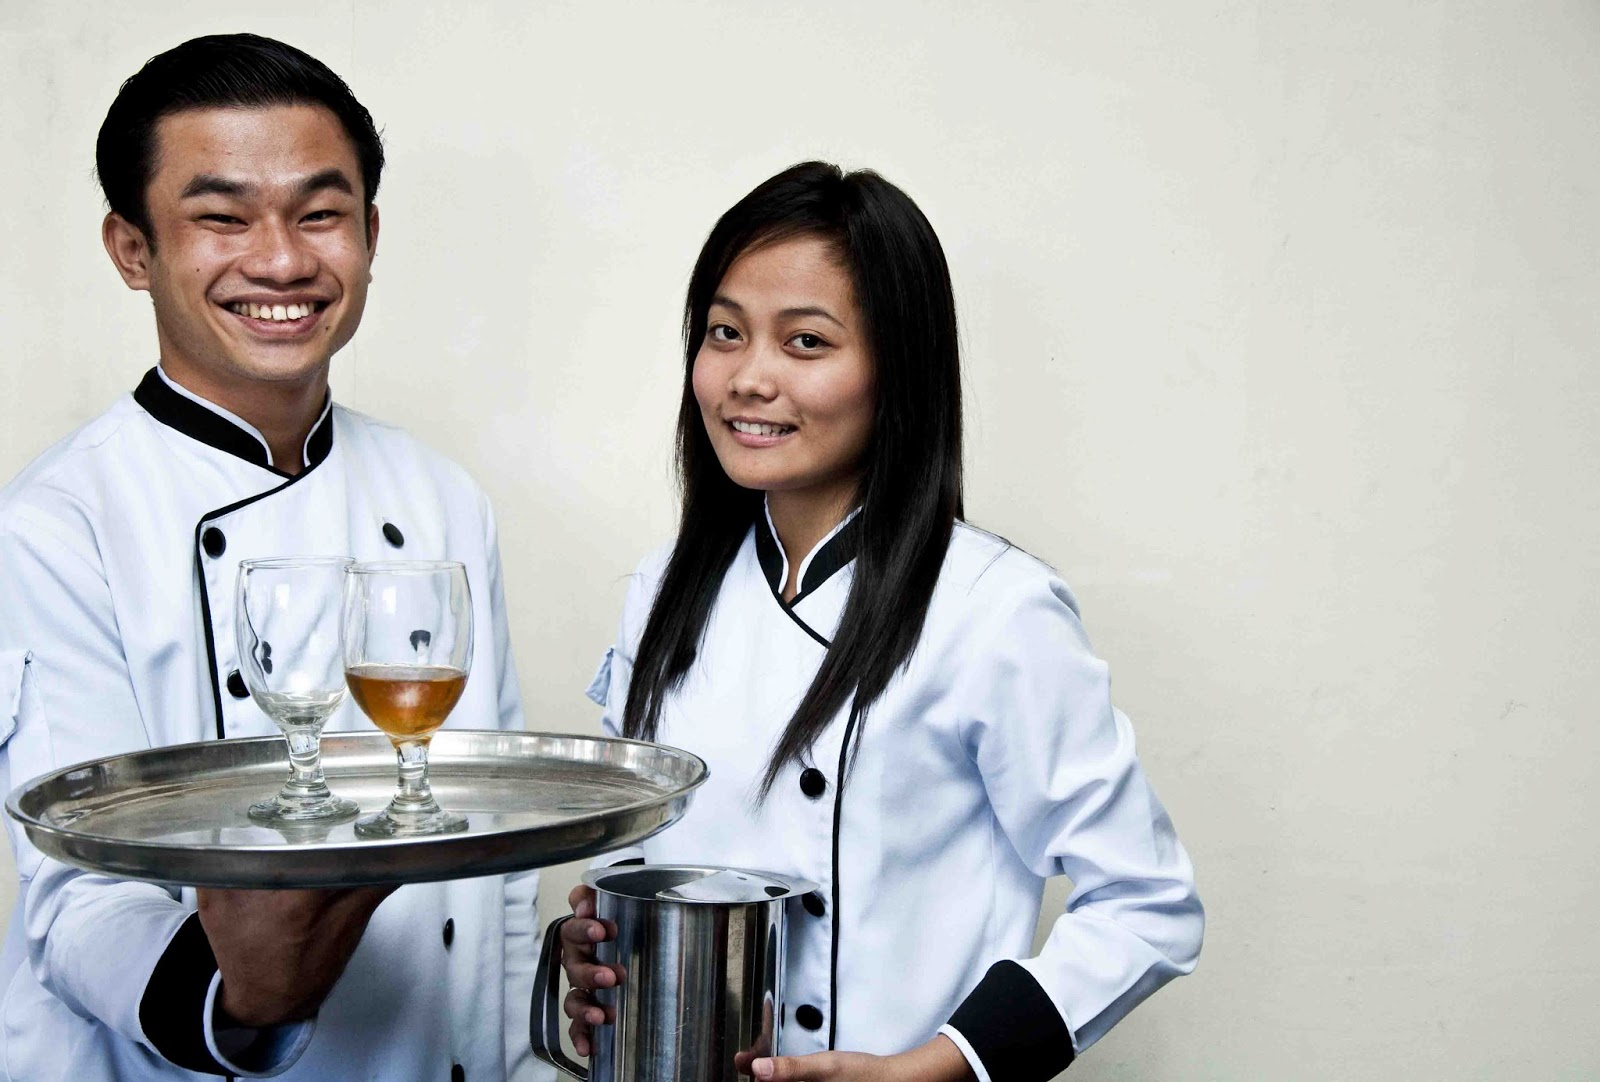 thesis about hotel and restaurant management Practical thesis topic for hotel and restaurant management student thank you i hope hr498 hotel and restaurant bachelor thesis (3 credits.